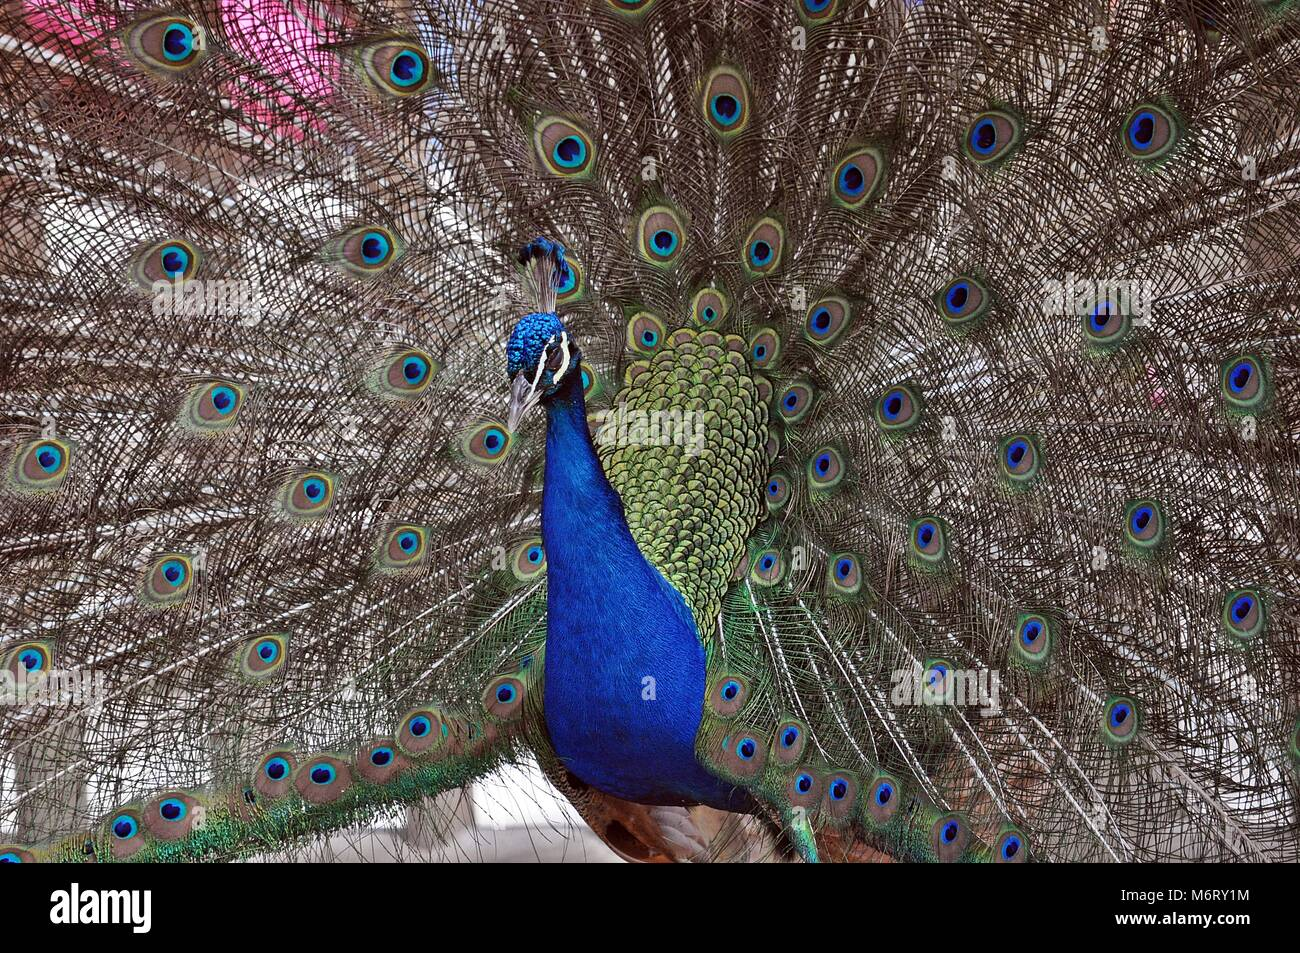 Peacock Showing plumage, Colorful awesome animal bird - Stock Image